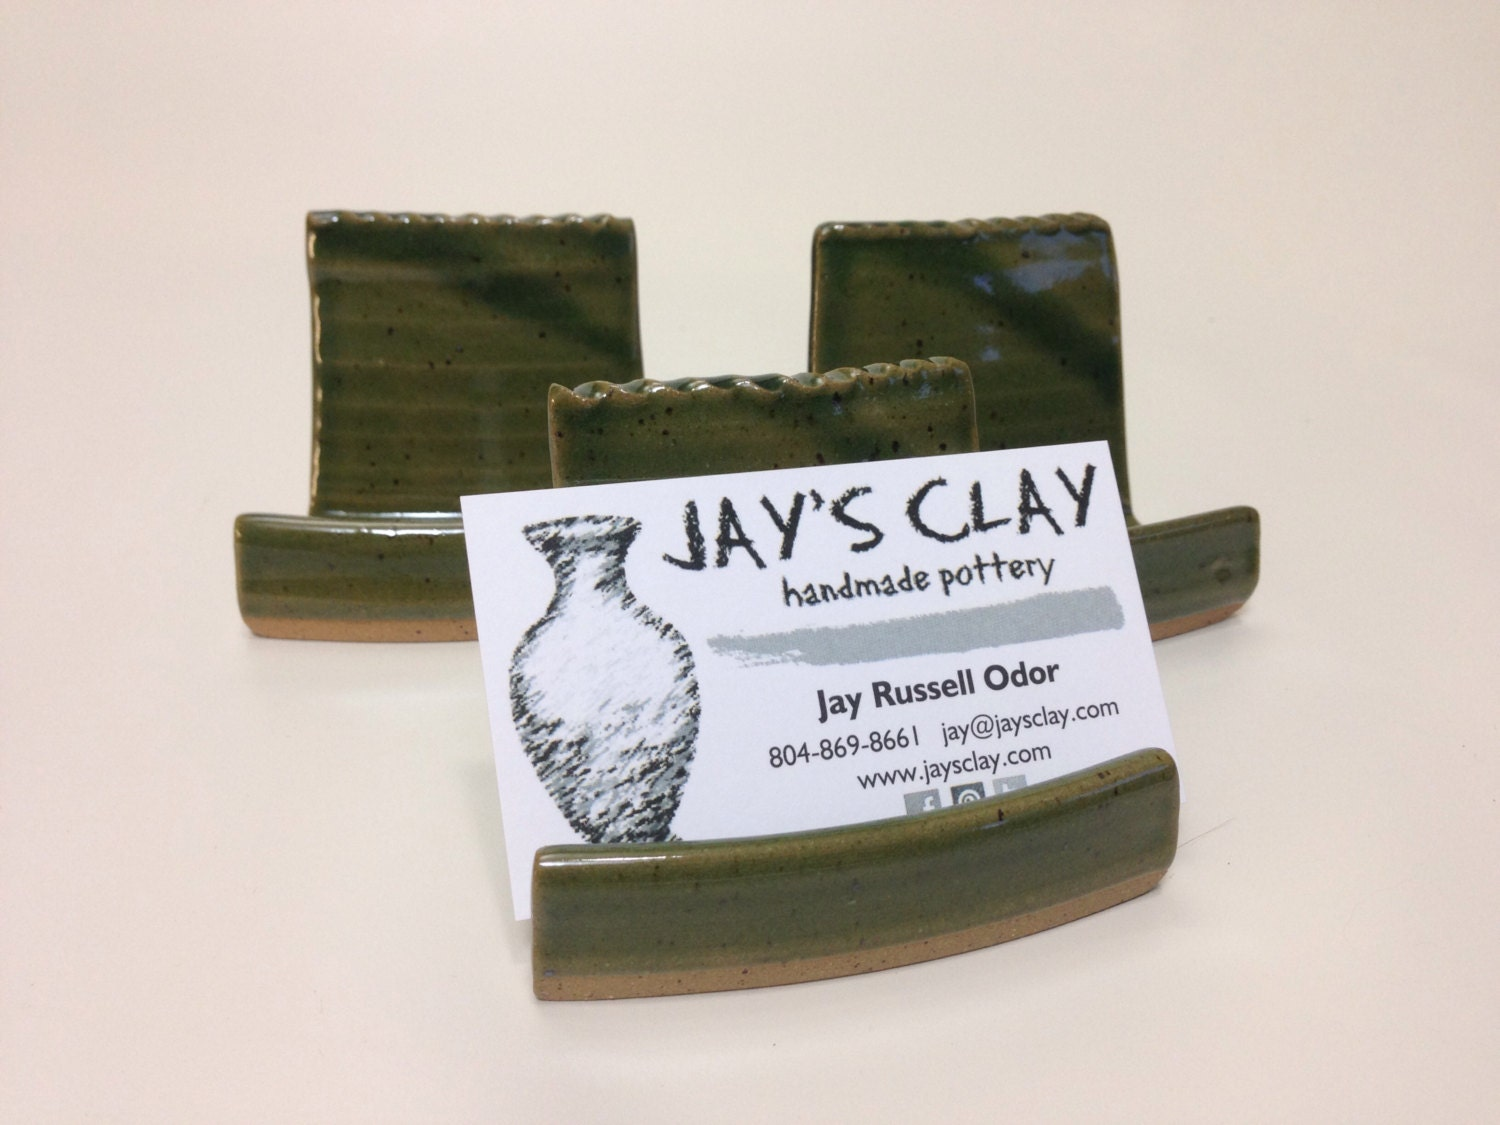 Pottery business card holder for odd shaped cards for Odd shaped business cards